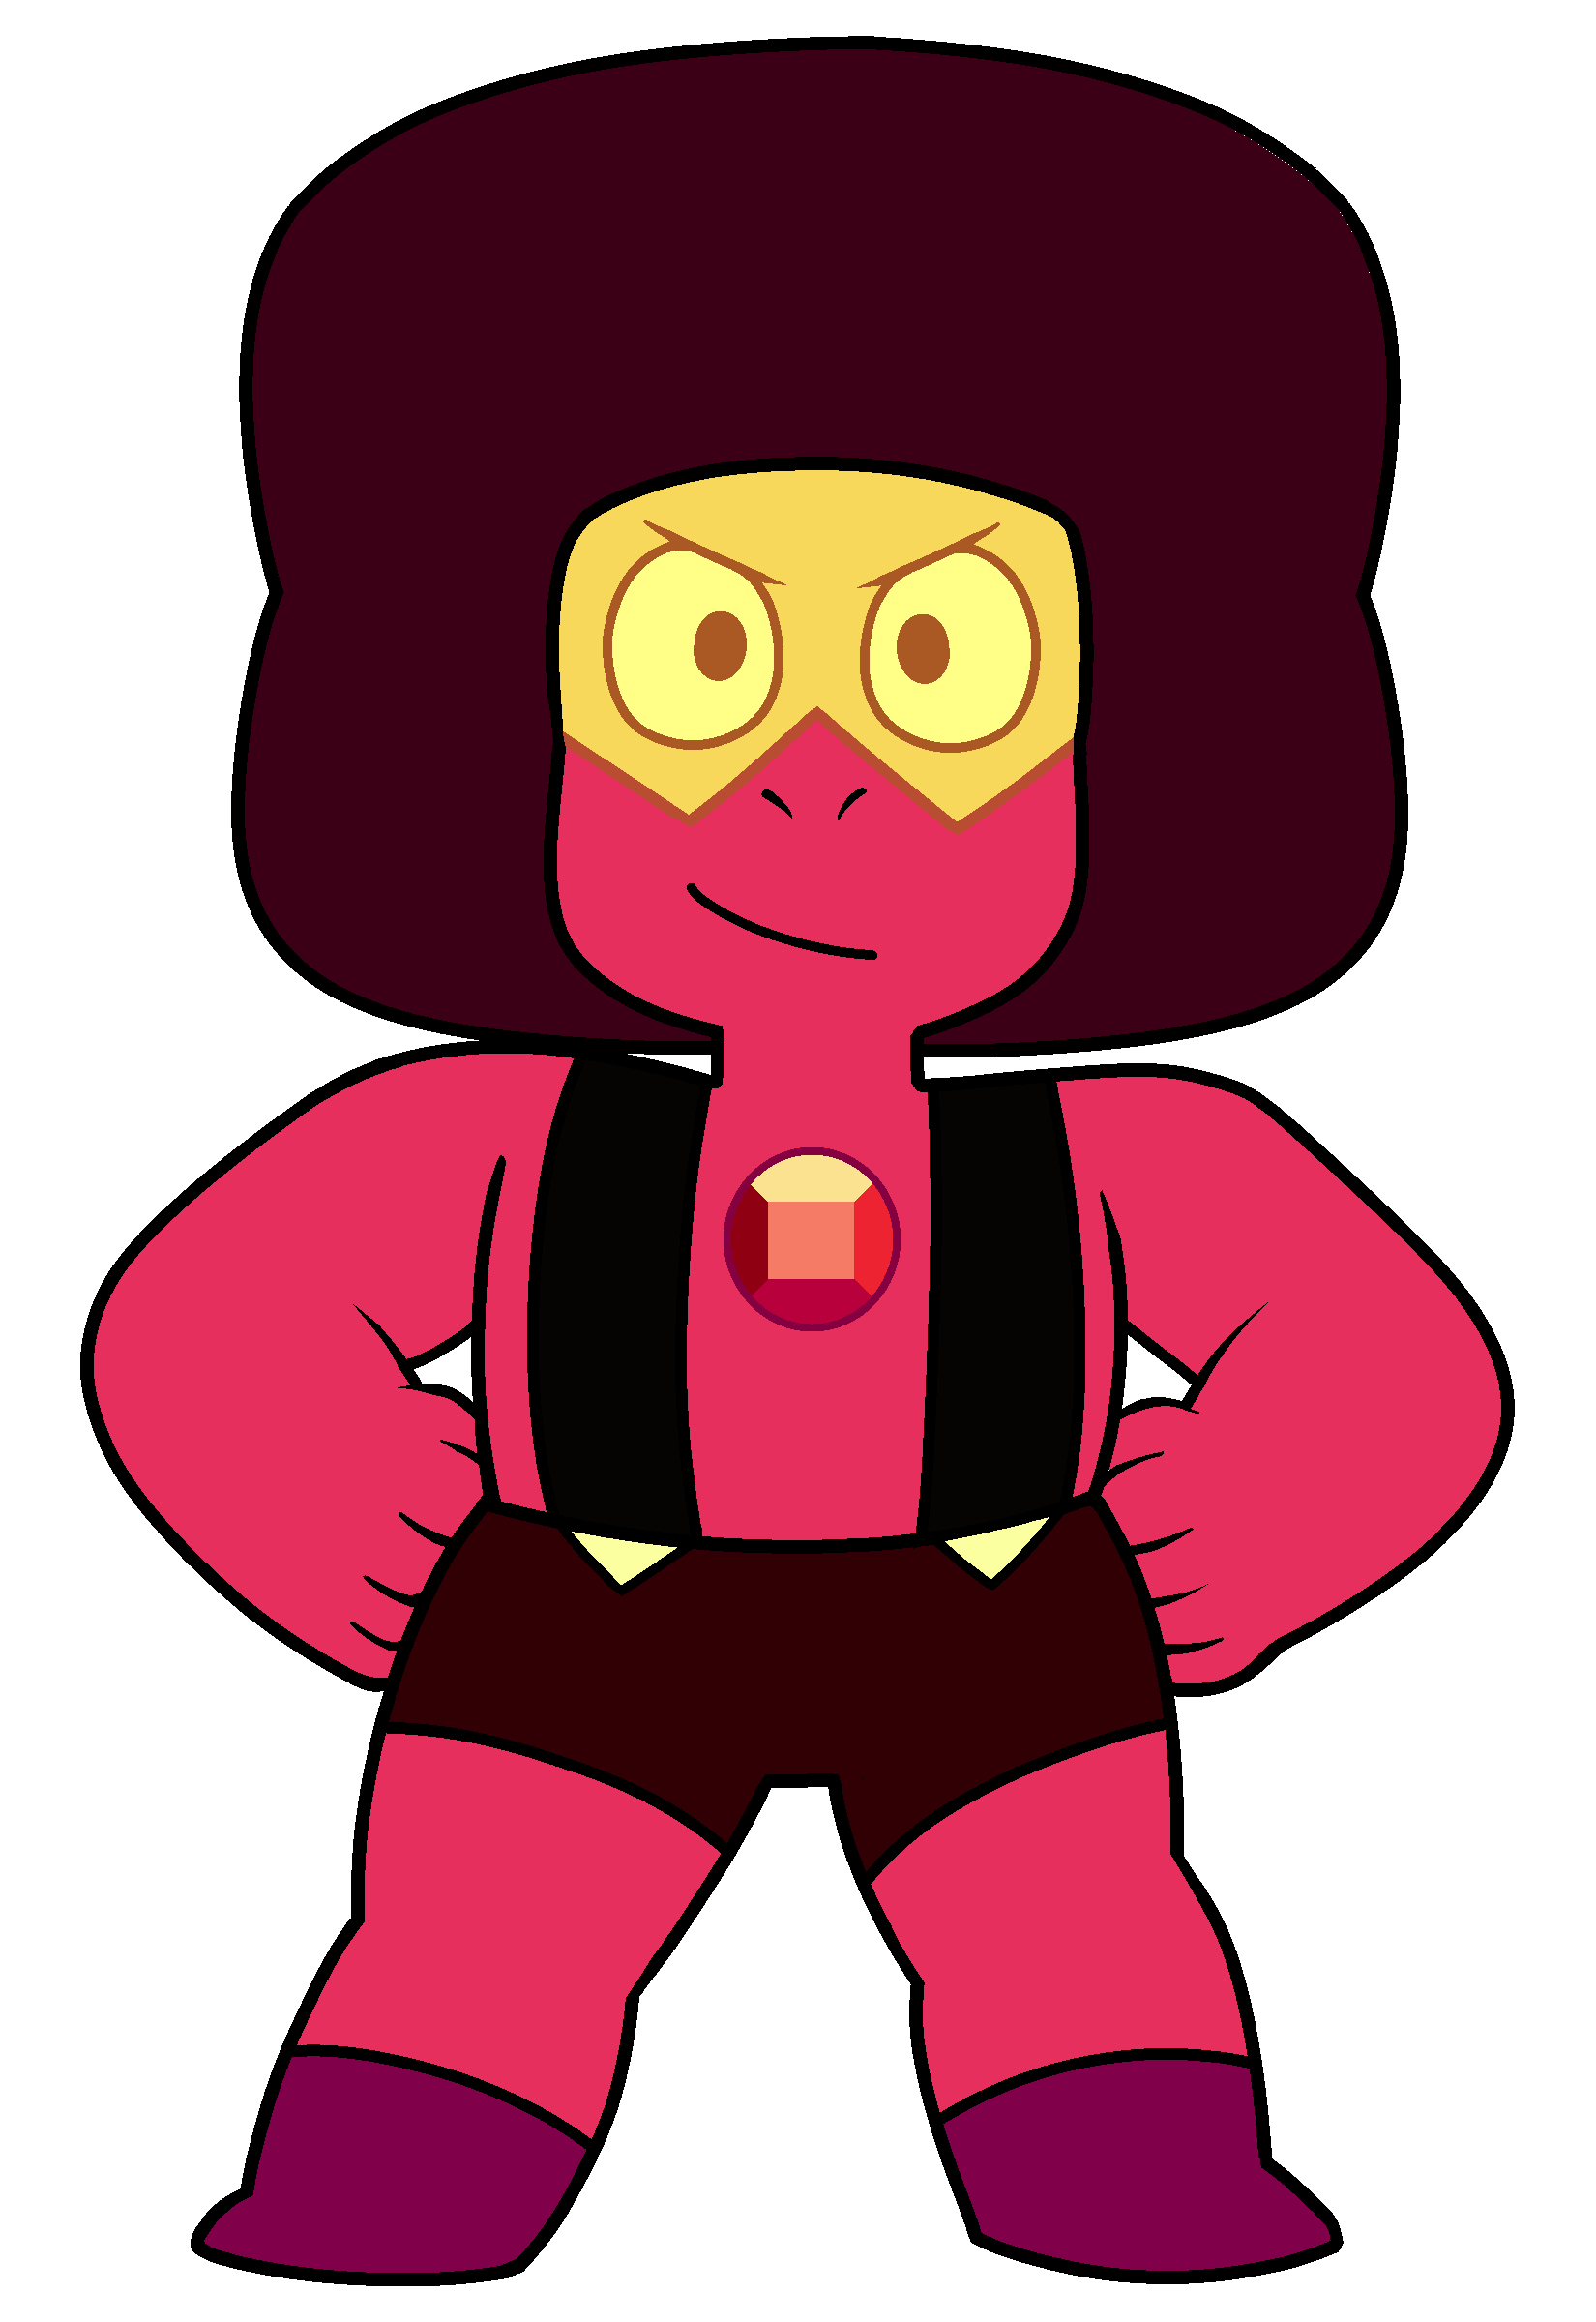 Fight clipart hits. Ruby doc steven universe